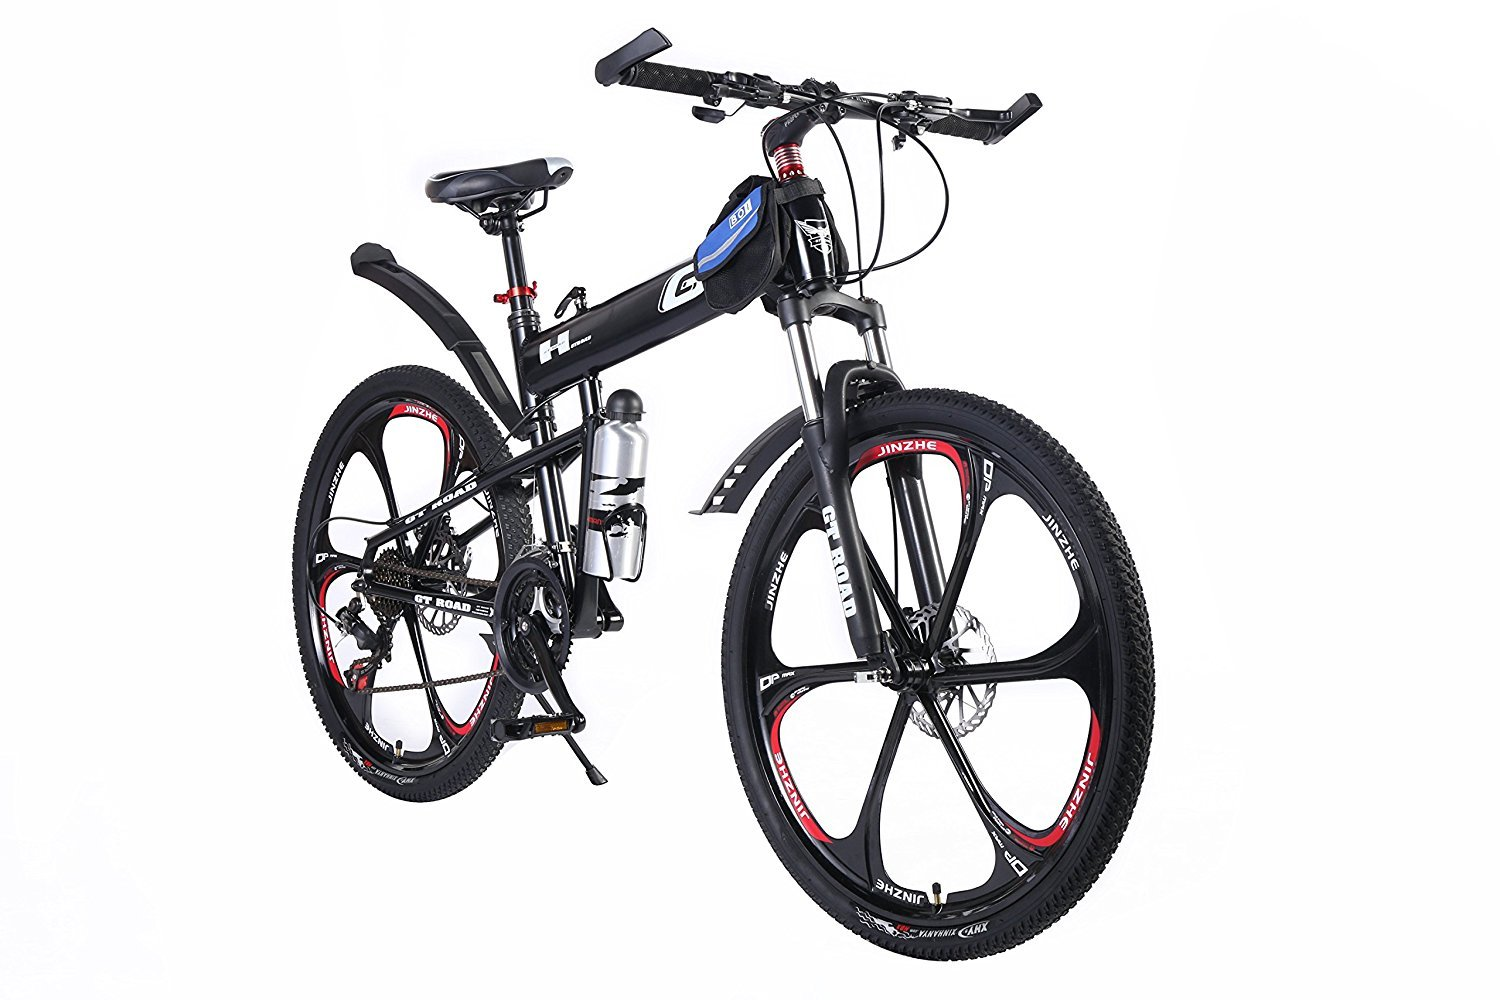 OPATER MTB Mountain Bike 26″ 24 Speed Sturdy Carbon Steel Frame Bike For Men and Women (Black) by OPATER (Image #1)